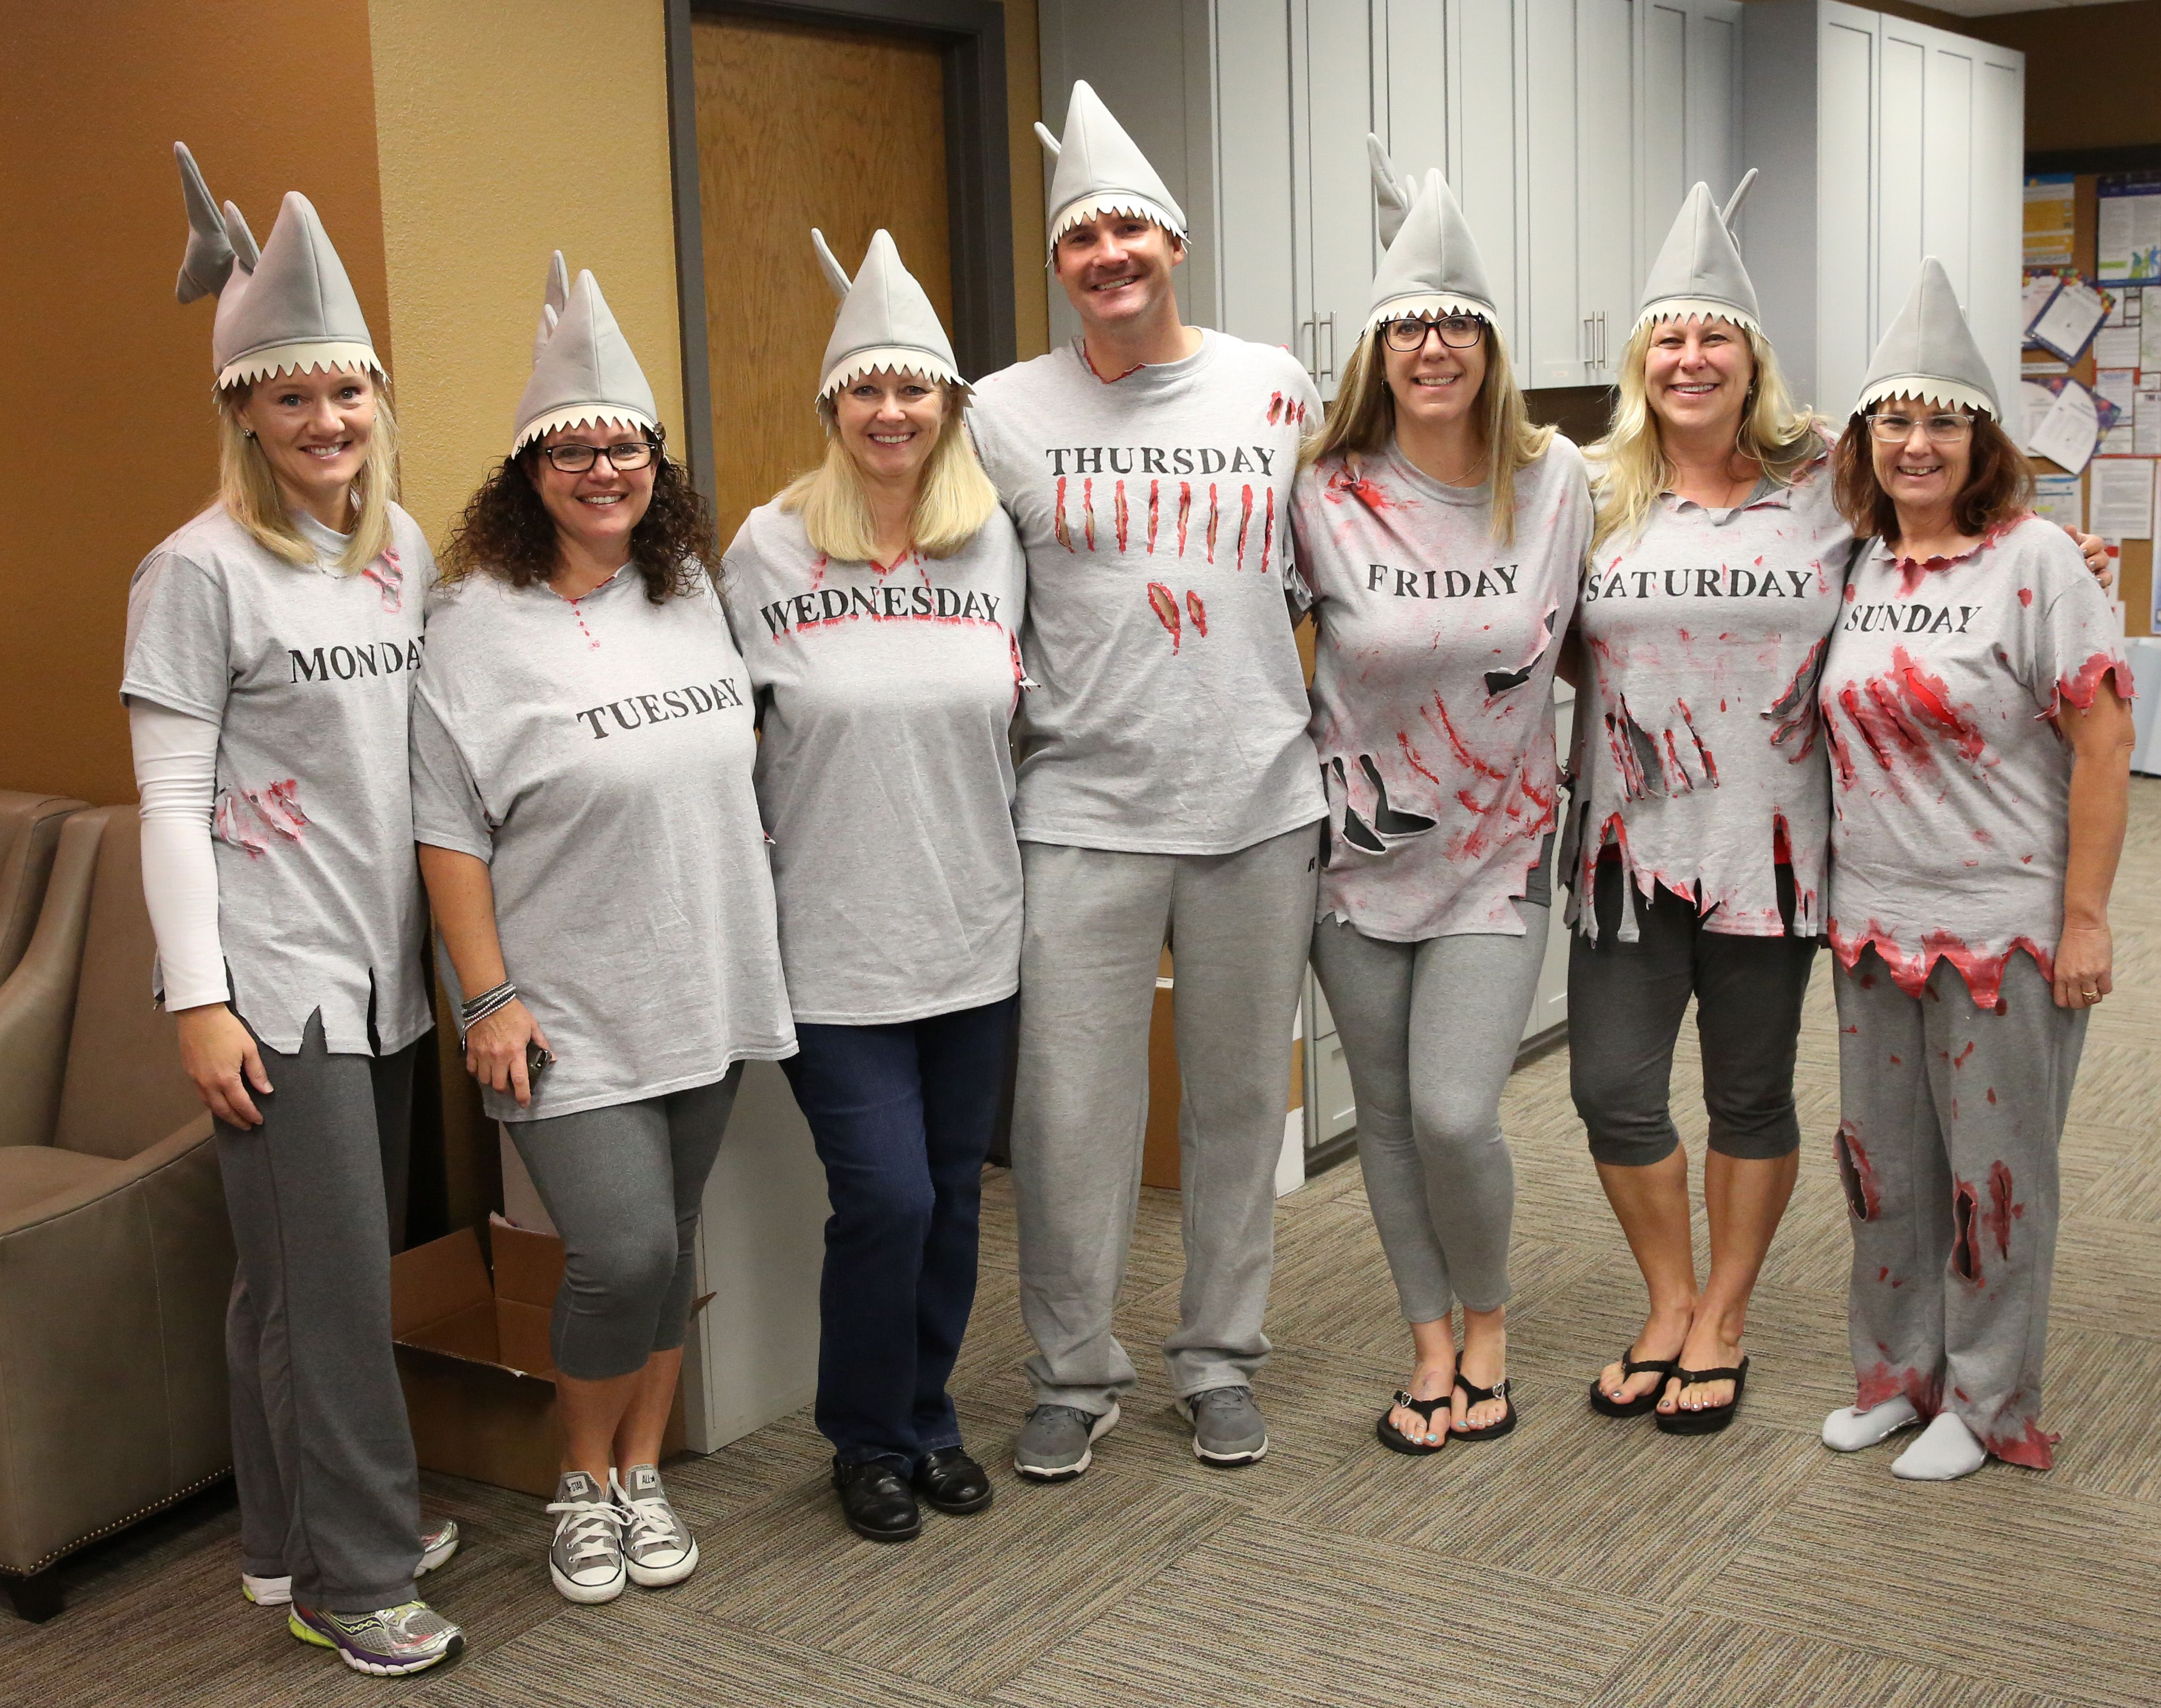 SHARK WEEK - Group Costume  sc 1 st  Pinterest & SHARK WEEK - Group Costume | Thrift Town Halloween Costume ...